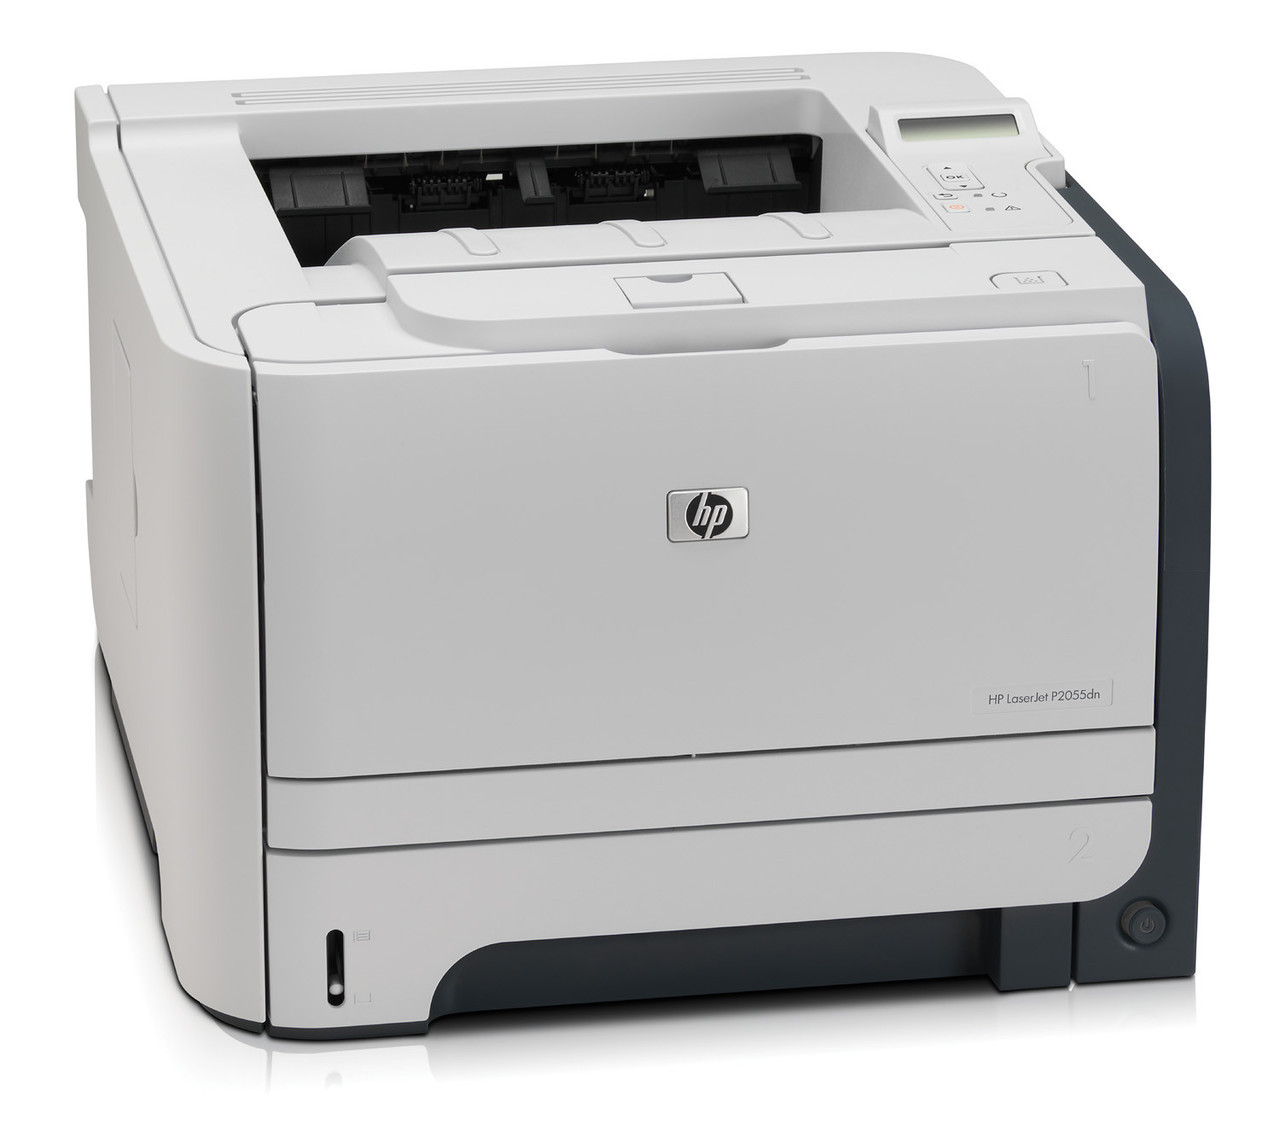 HP Laserjet P2055dn - CE459AR - HP Laser Printer for sale